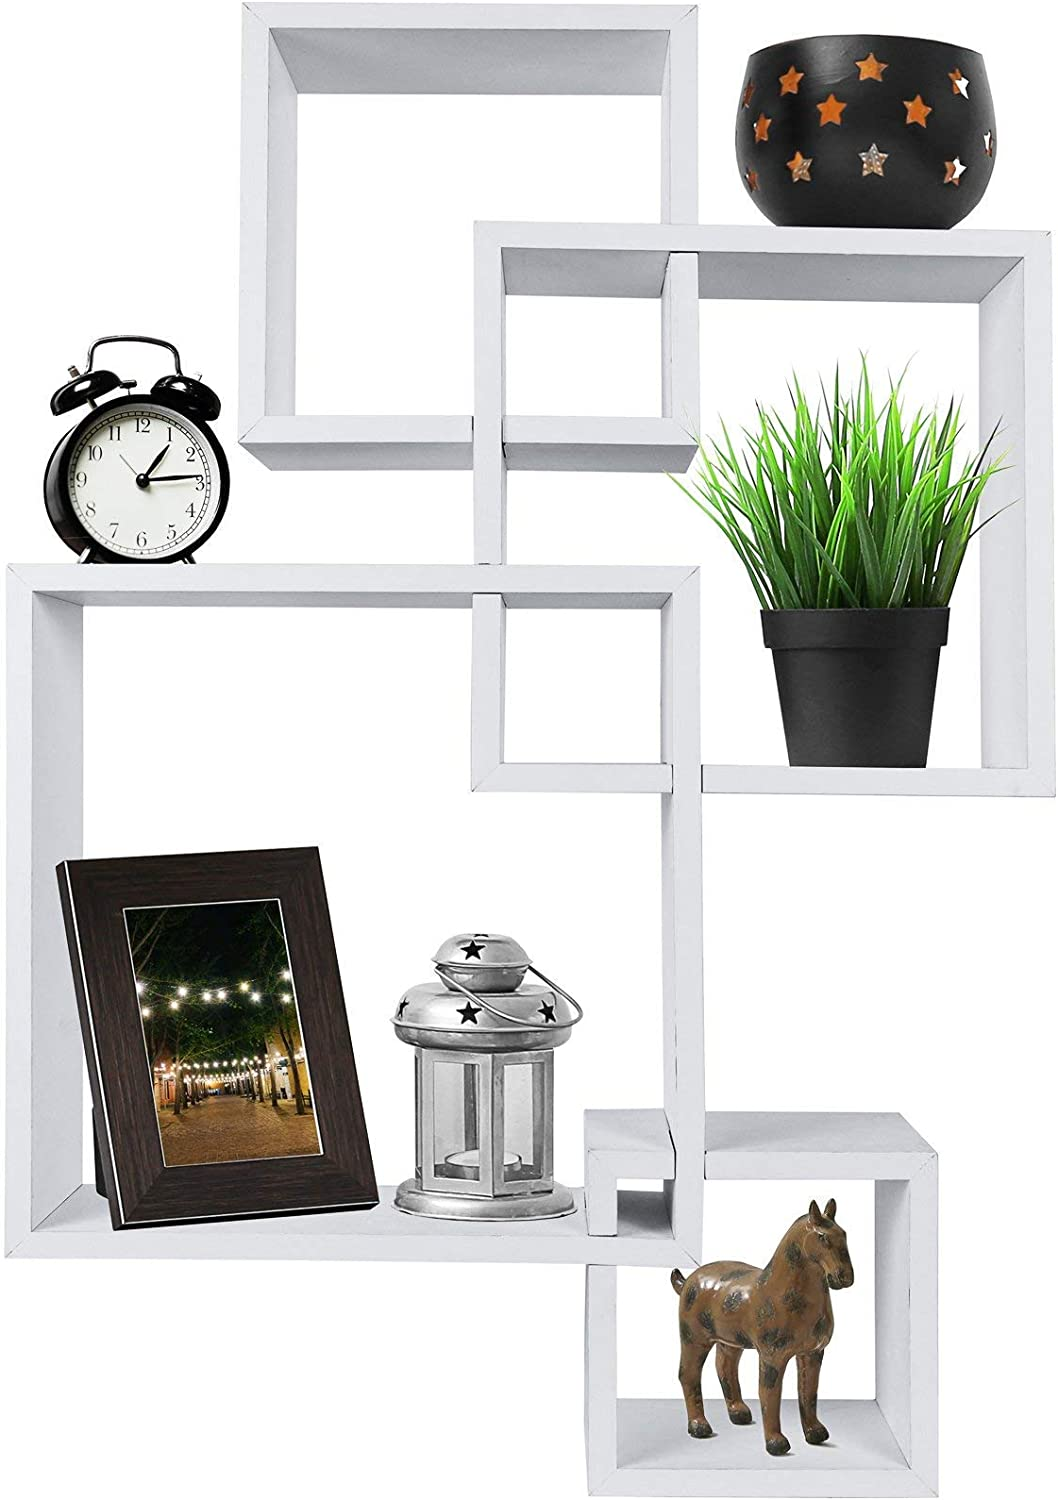 Greenco Decorative 4 Cube Intersecting Wall Mounted Floating Shelves- White Finish: Home & Kitchen